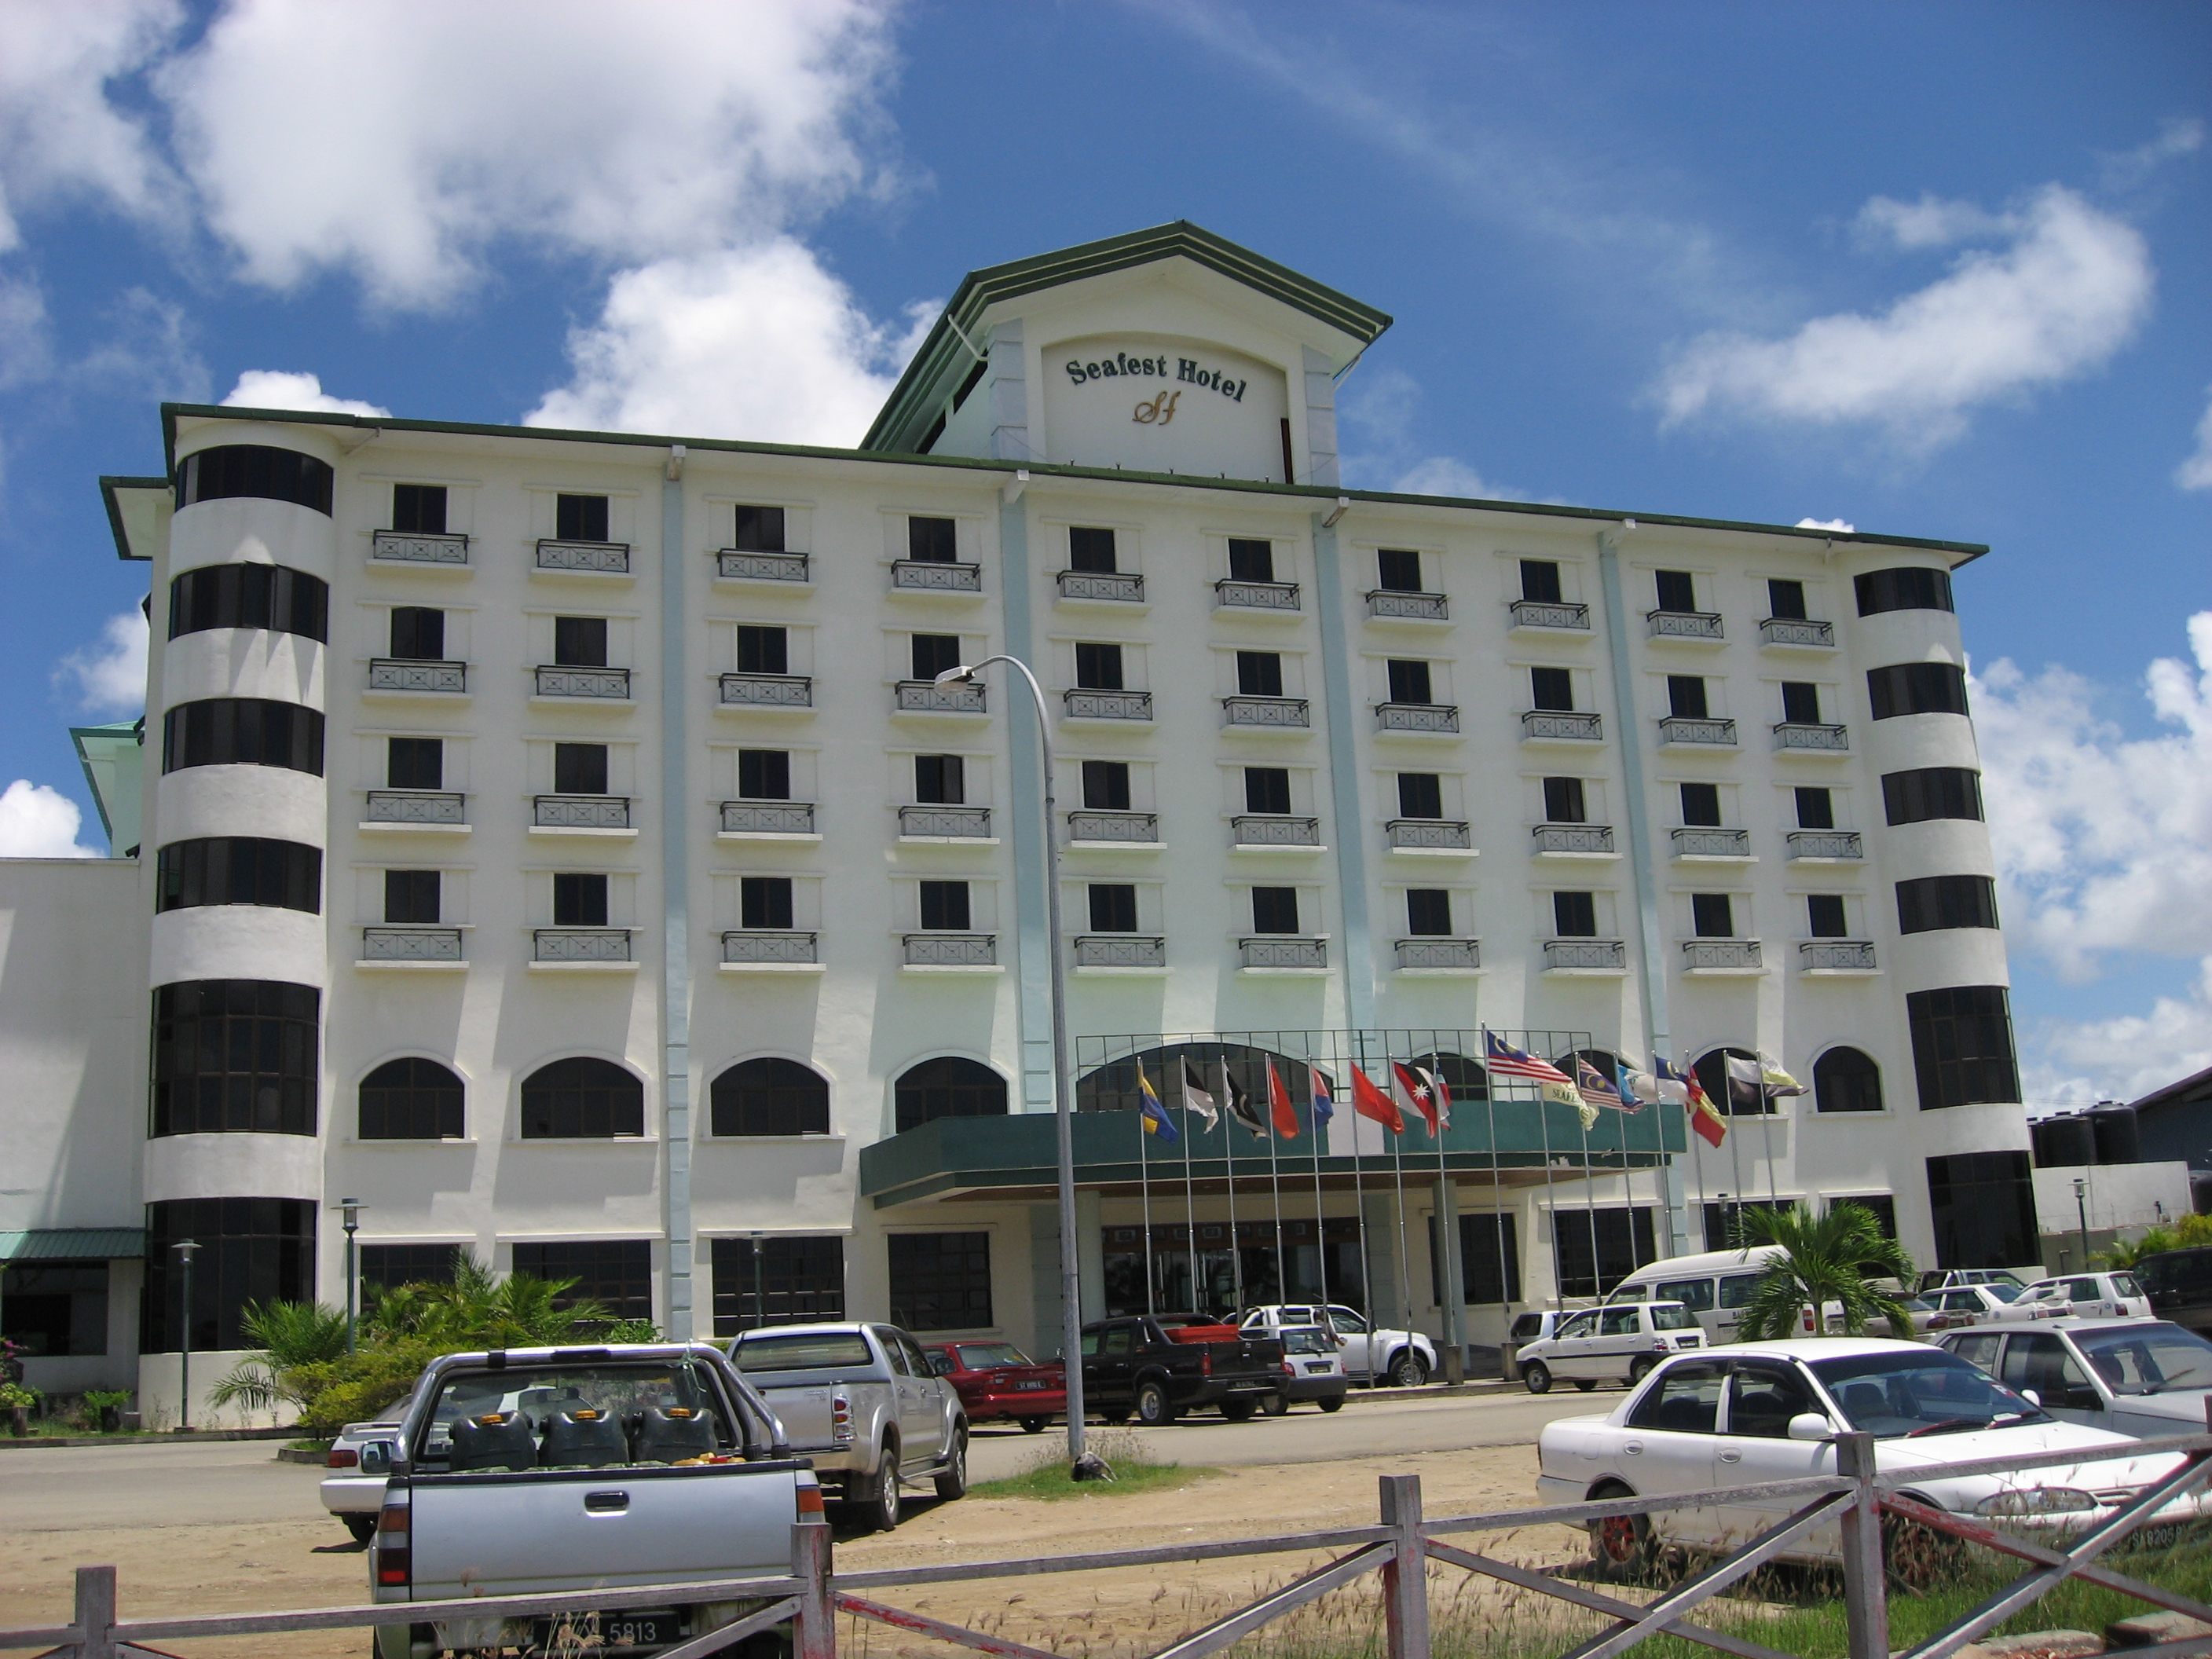 Seafest Hotel